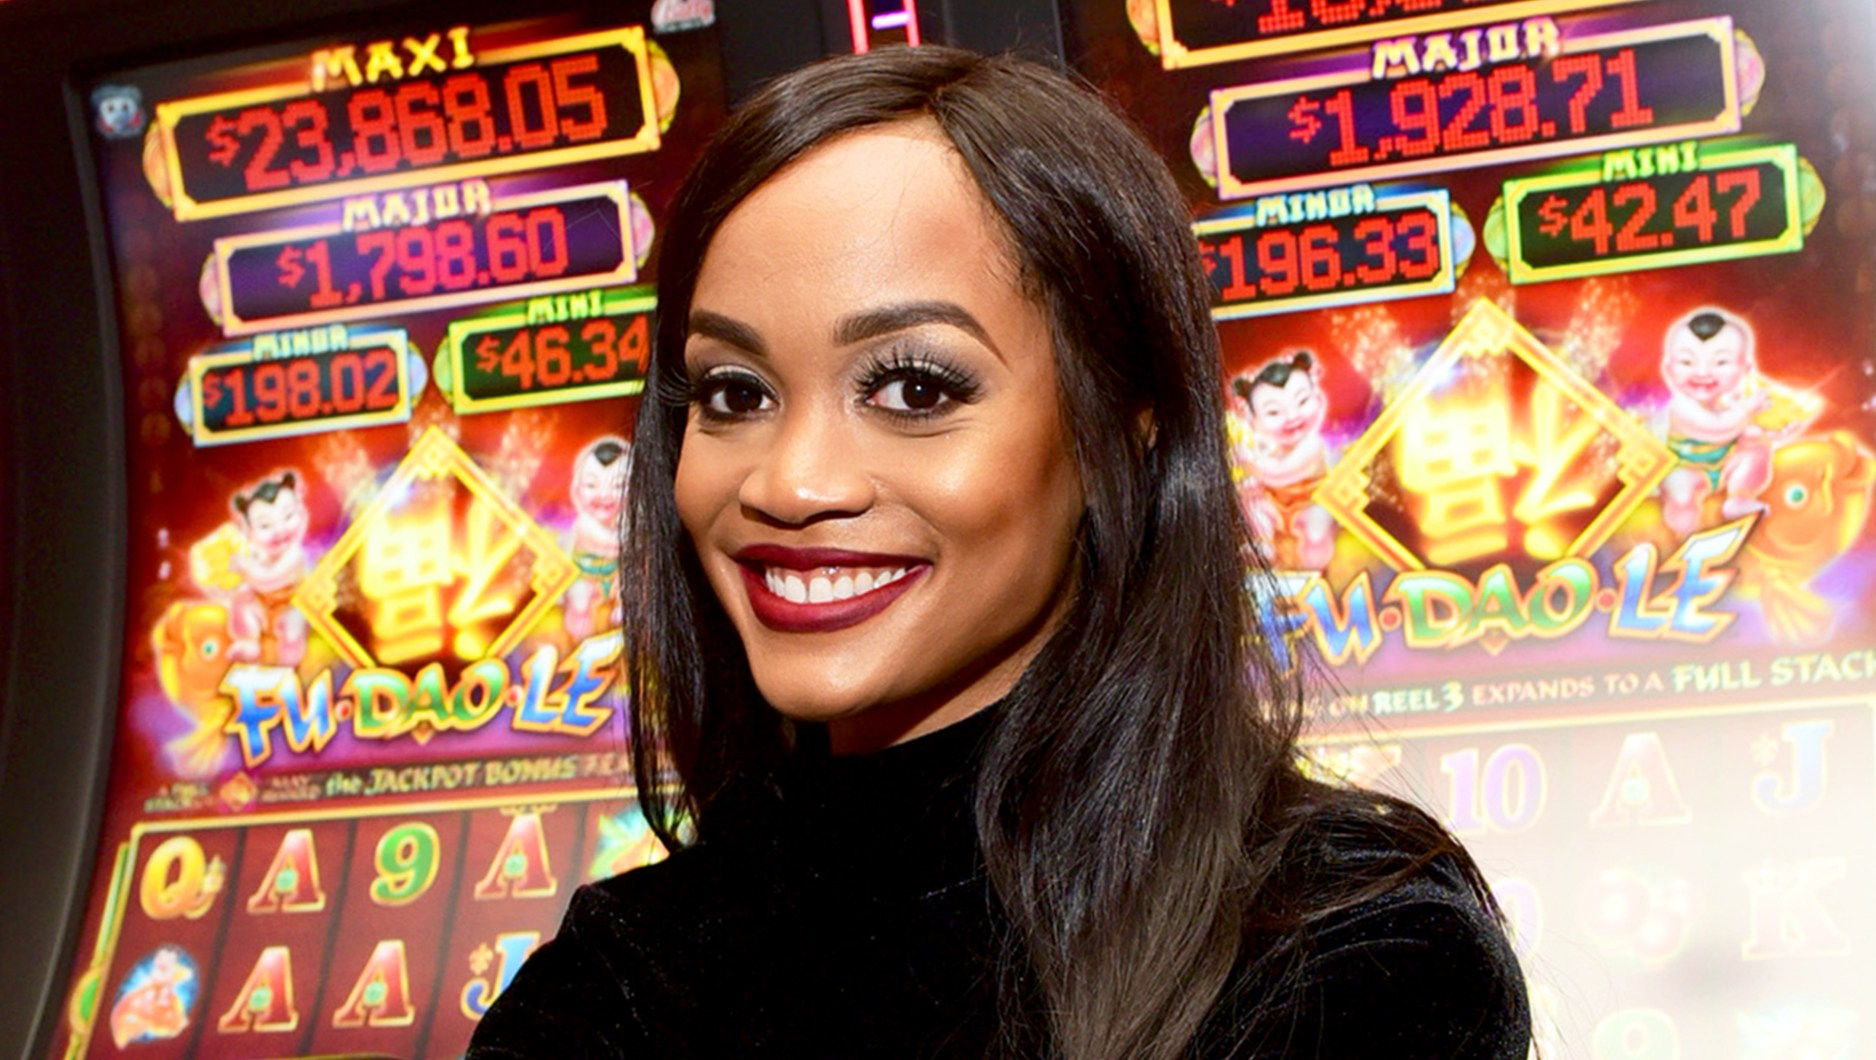 Rachel Lindsay celebrates birthday at SugarHouse Casino on April 21, 2018 in Philadelphia, Pennsylvania.